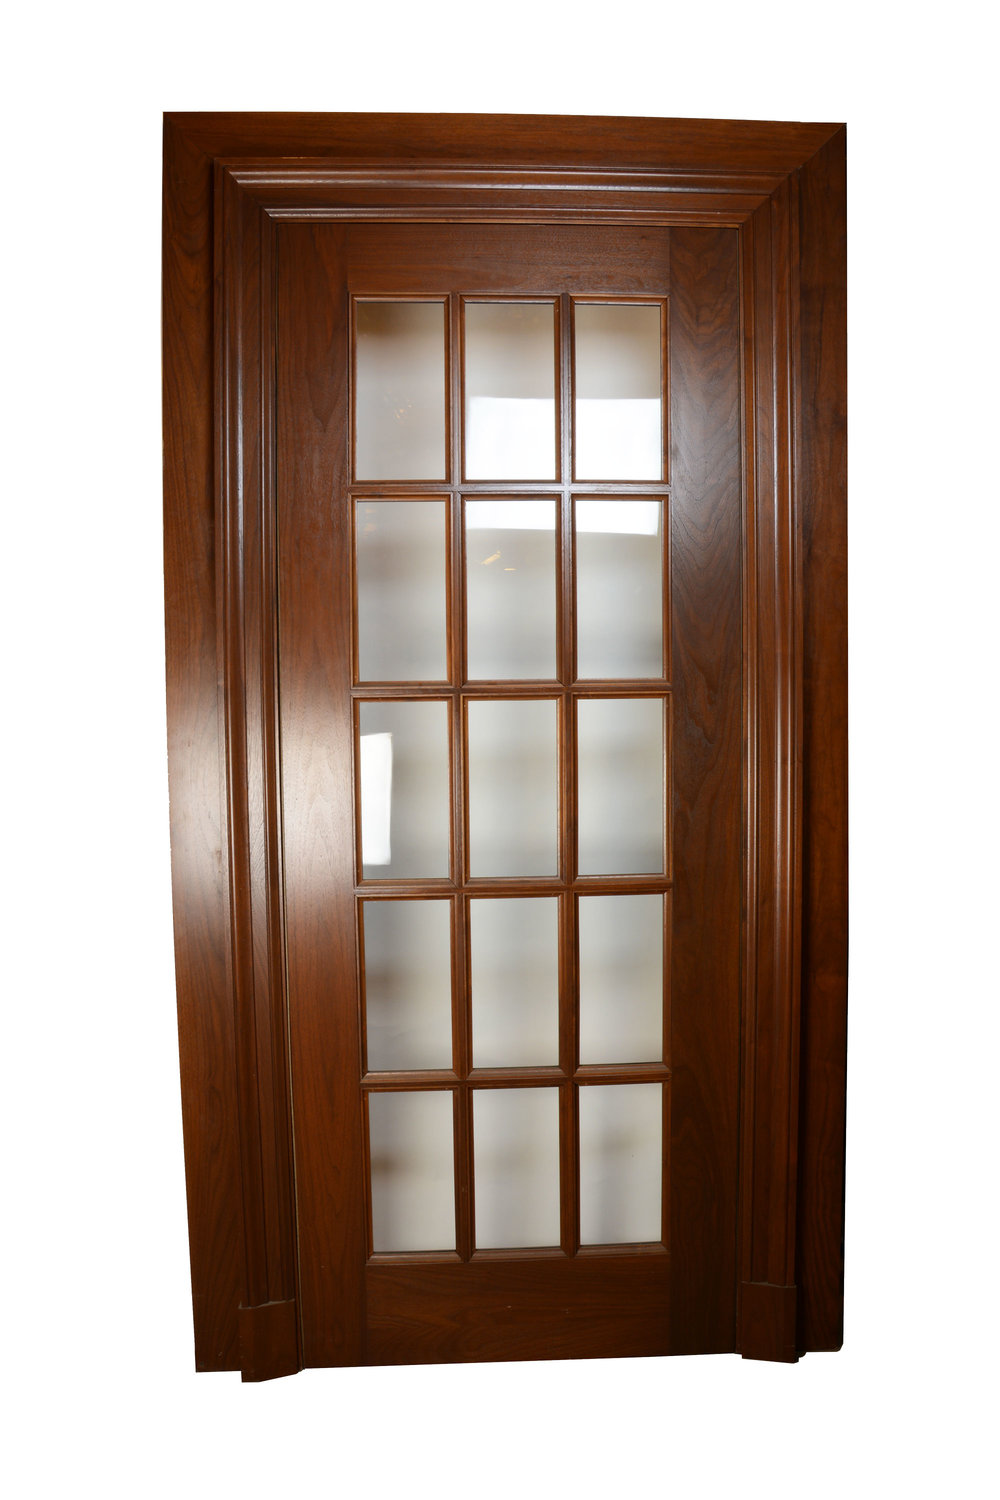 42266-walnut-french-window-doors-MAIN.jpg